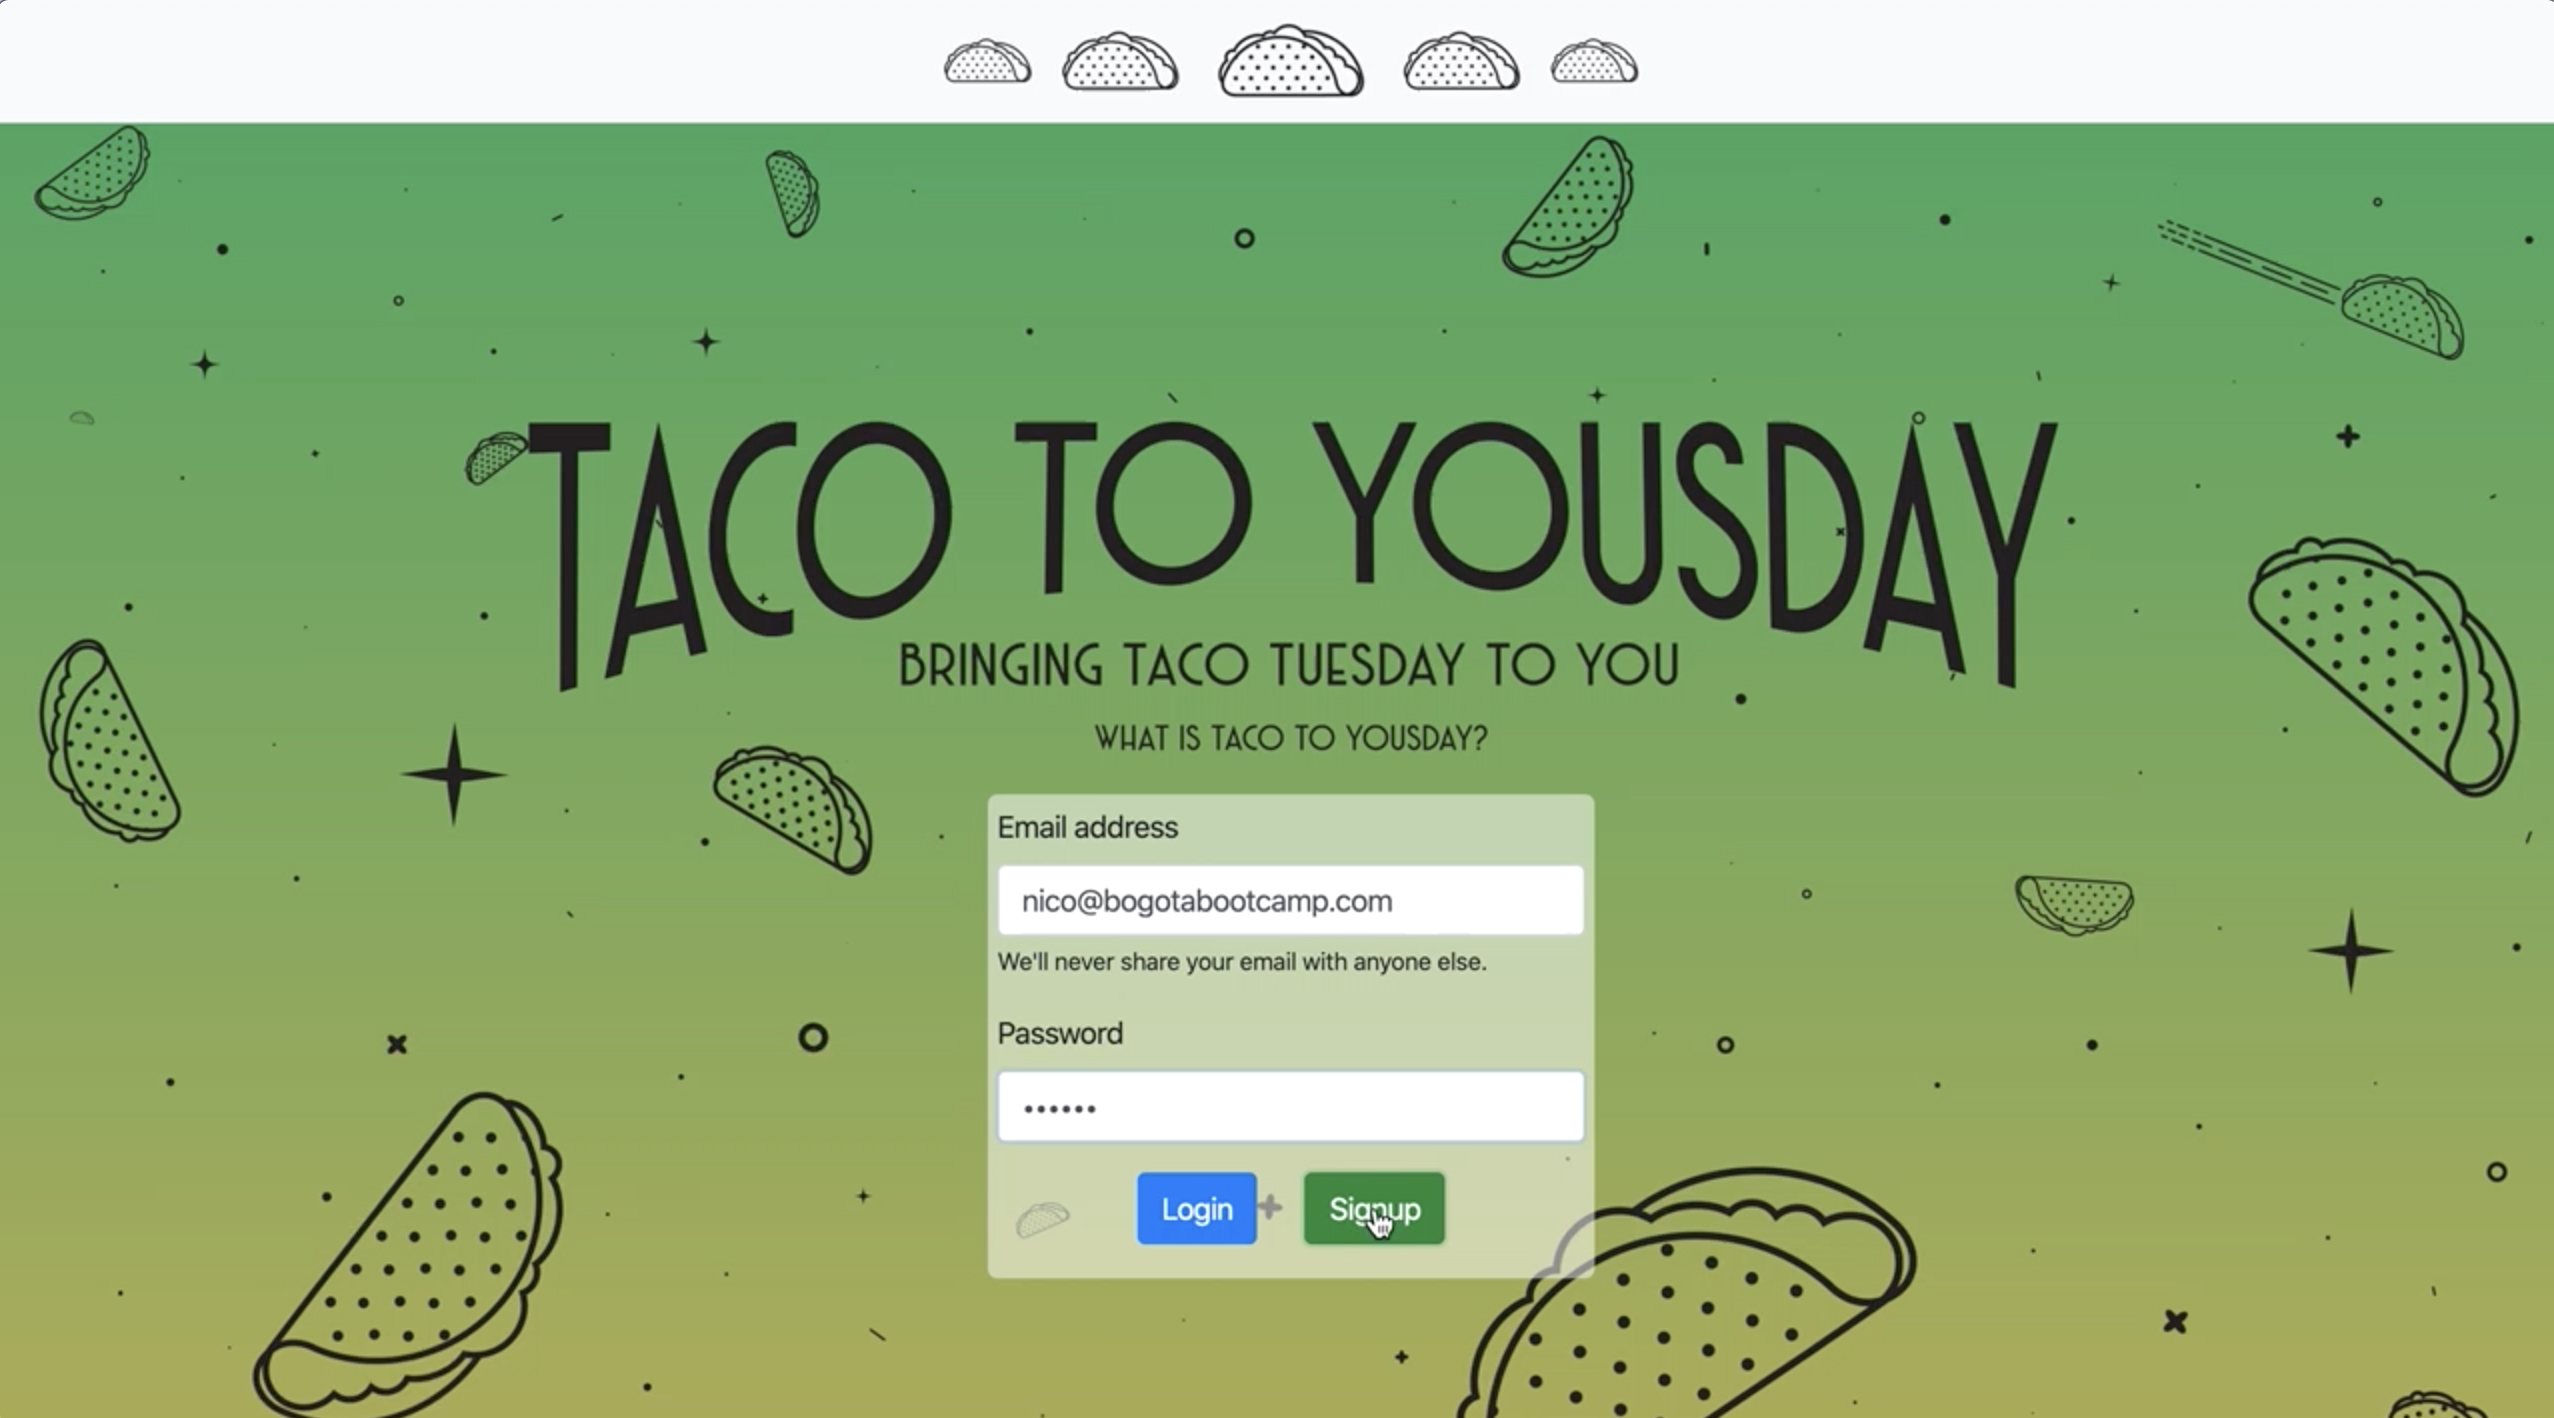 Taco to Yousday application